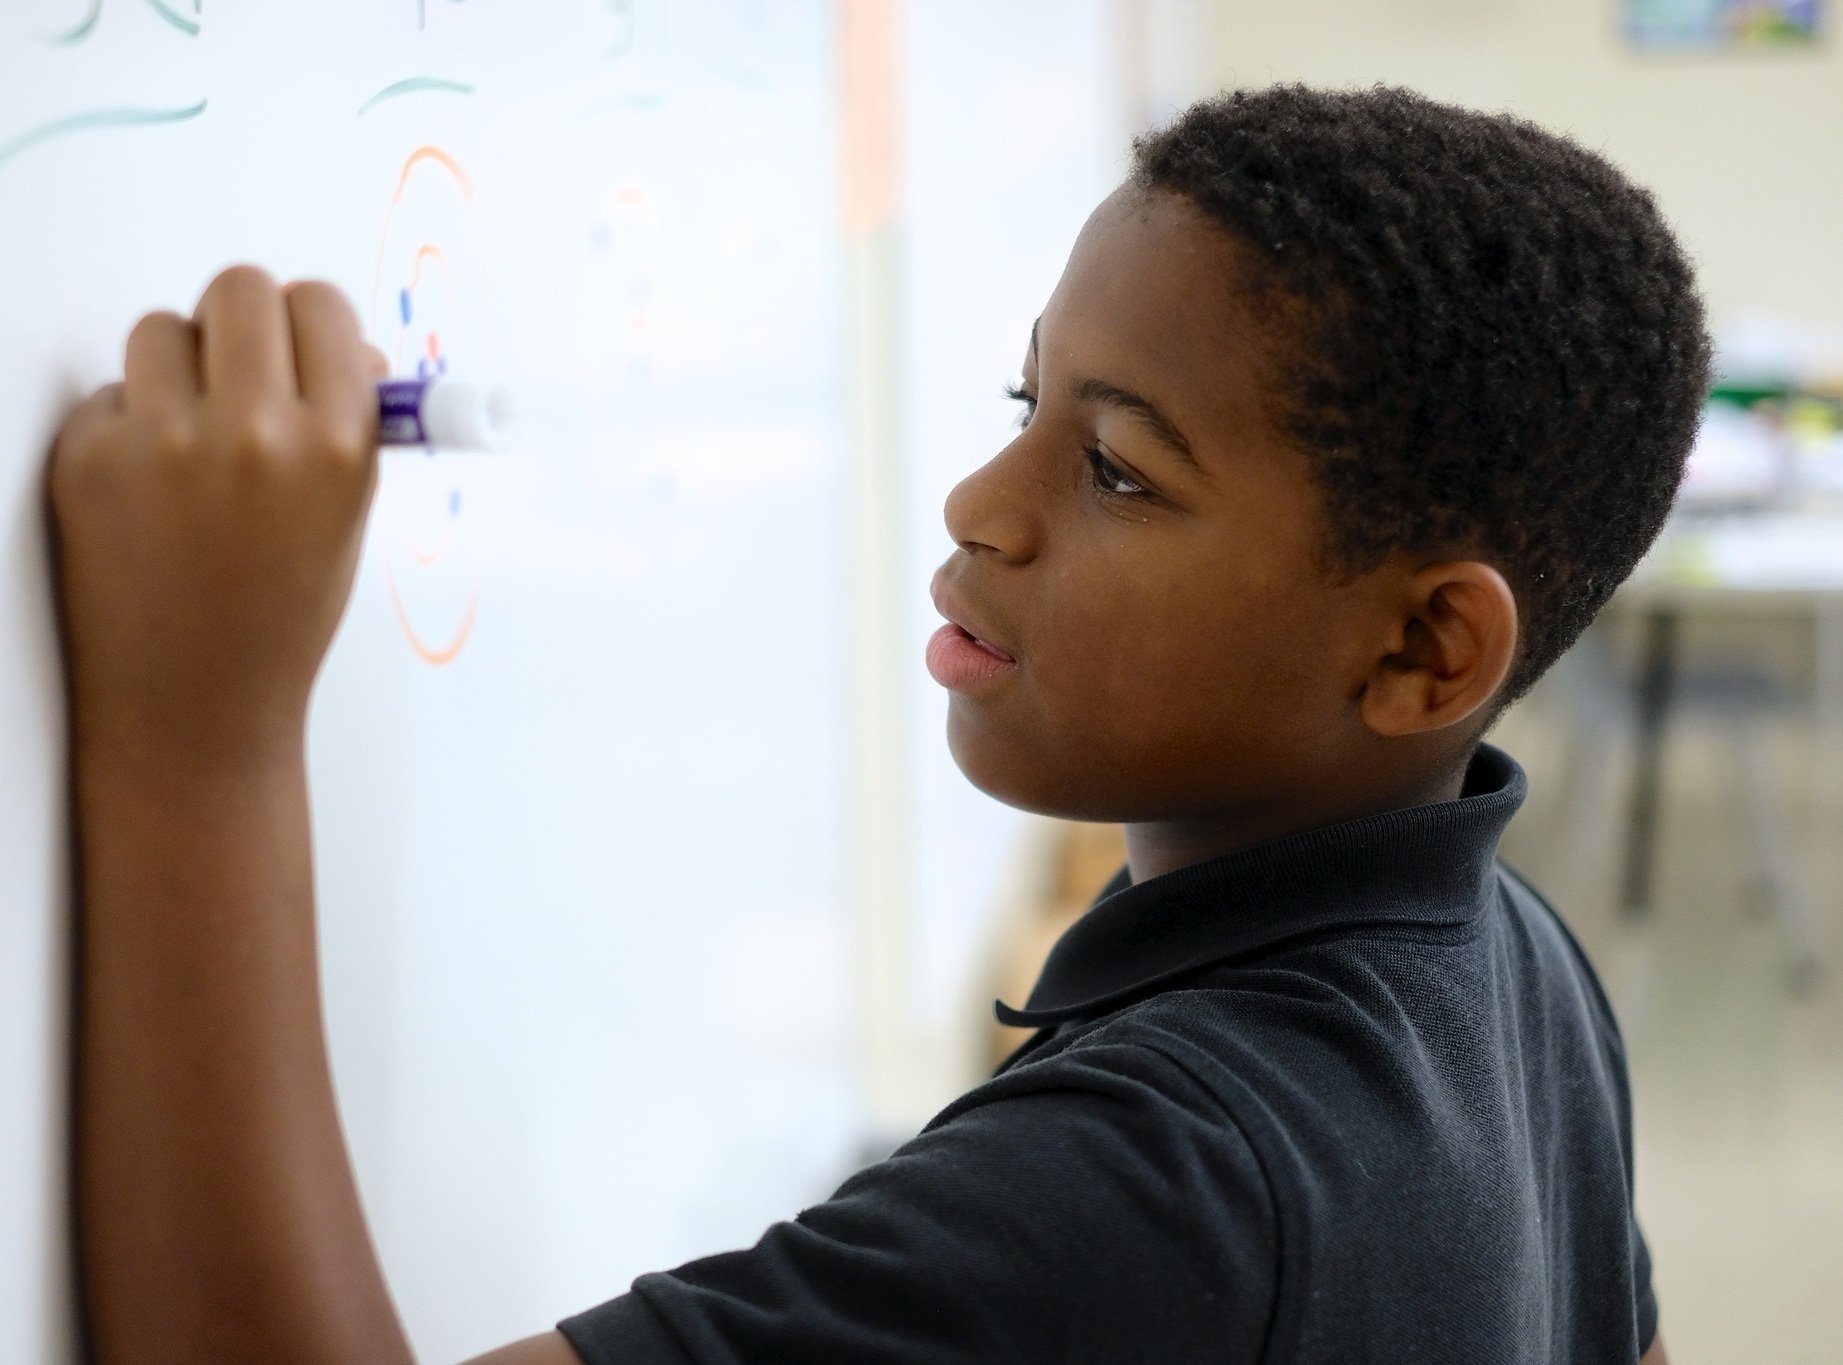 Our Goals - 1. Scholars will read at or above grade level.2. Every scholar will be ready for high school and on their way to a 4-year college.3. Emerald Academy will rank in the top 5% of all schools in Tennessee.